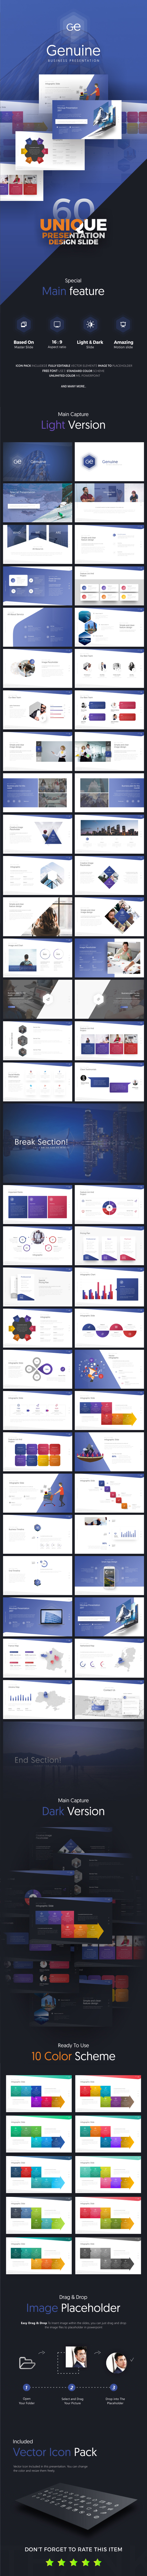 Genuine Business Presentation - Business PowerPoint Templates